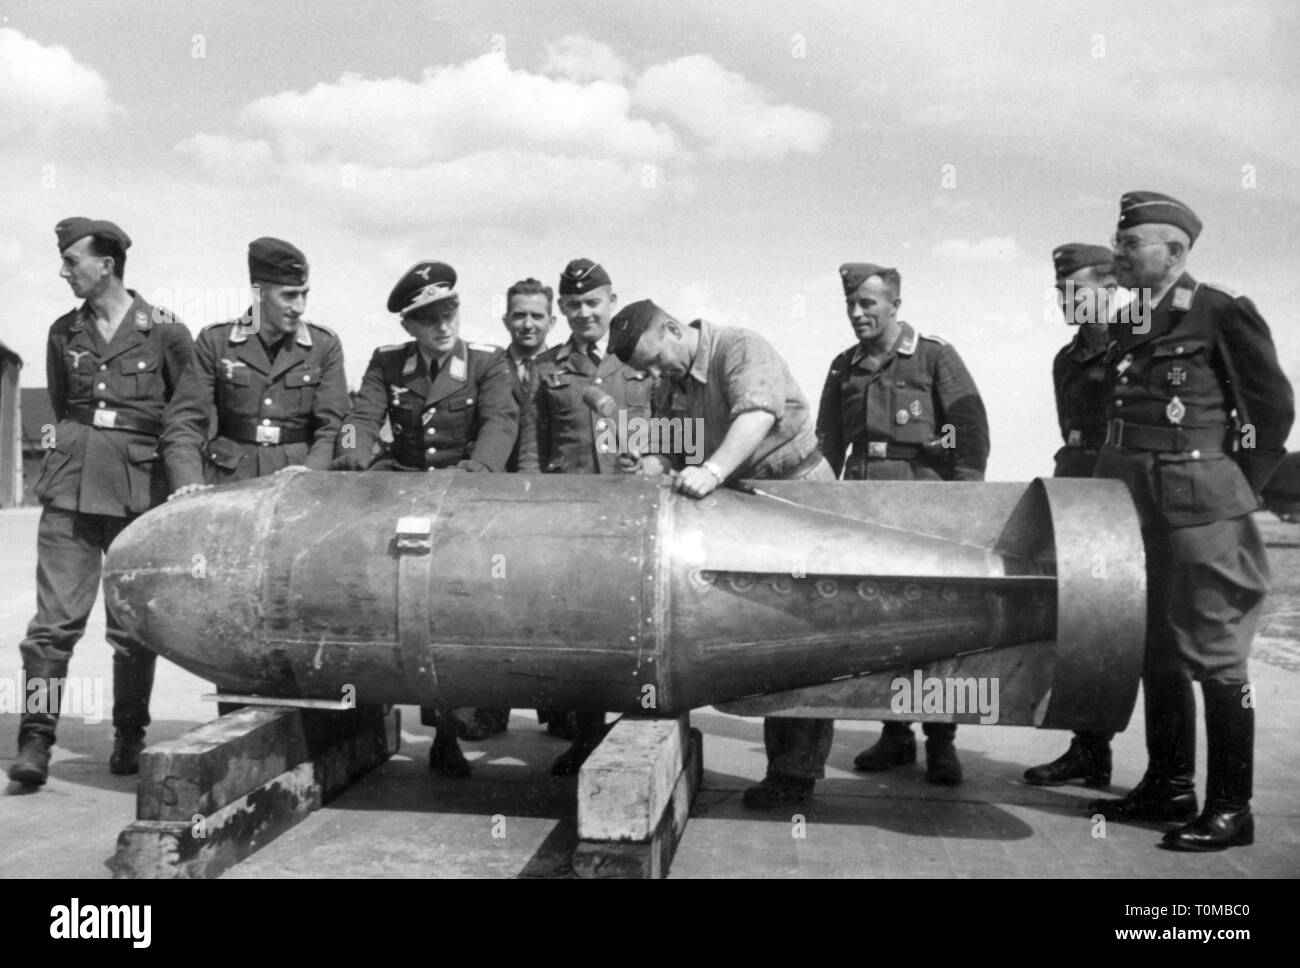 Second World War / WWII, aerial warfare, officers and non-commissioned officers of the German Luftwaffe (German Air Force) watching the work on an aircraft bomb, circa 1941, Additional-Rights-Clearance-Info-Not-Available - Stock Image